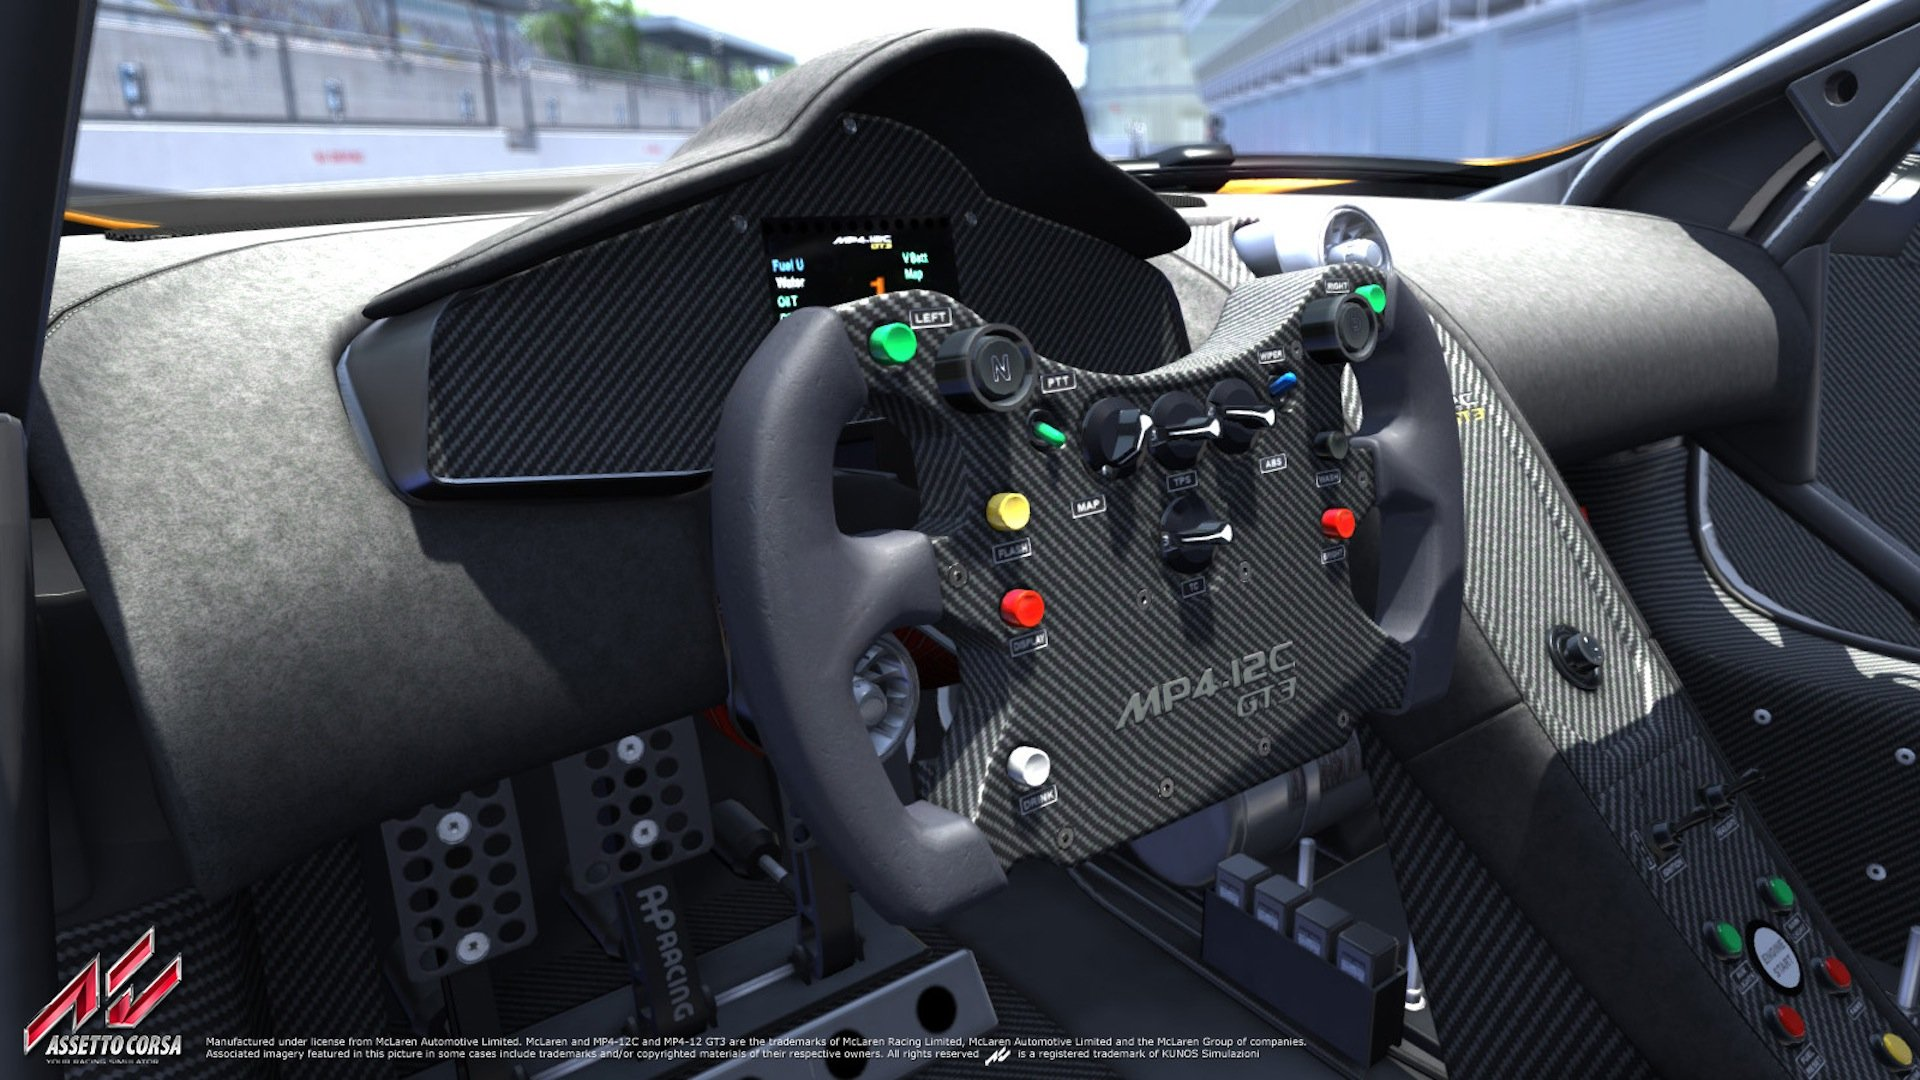 Assetto Corsa Update 0 6 5 Arrives Featuring Mclaren Mp4 12c Gt3 Inside Sim Racing